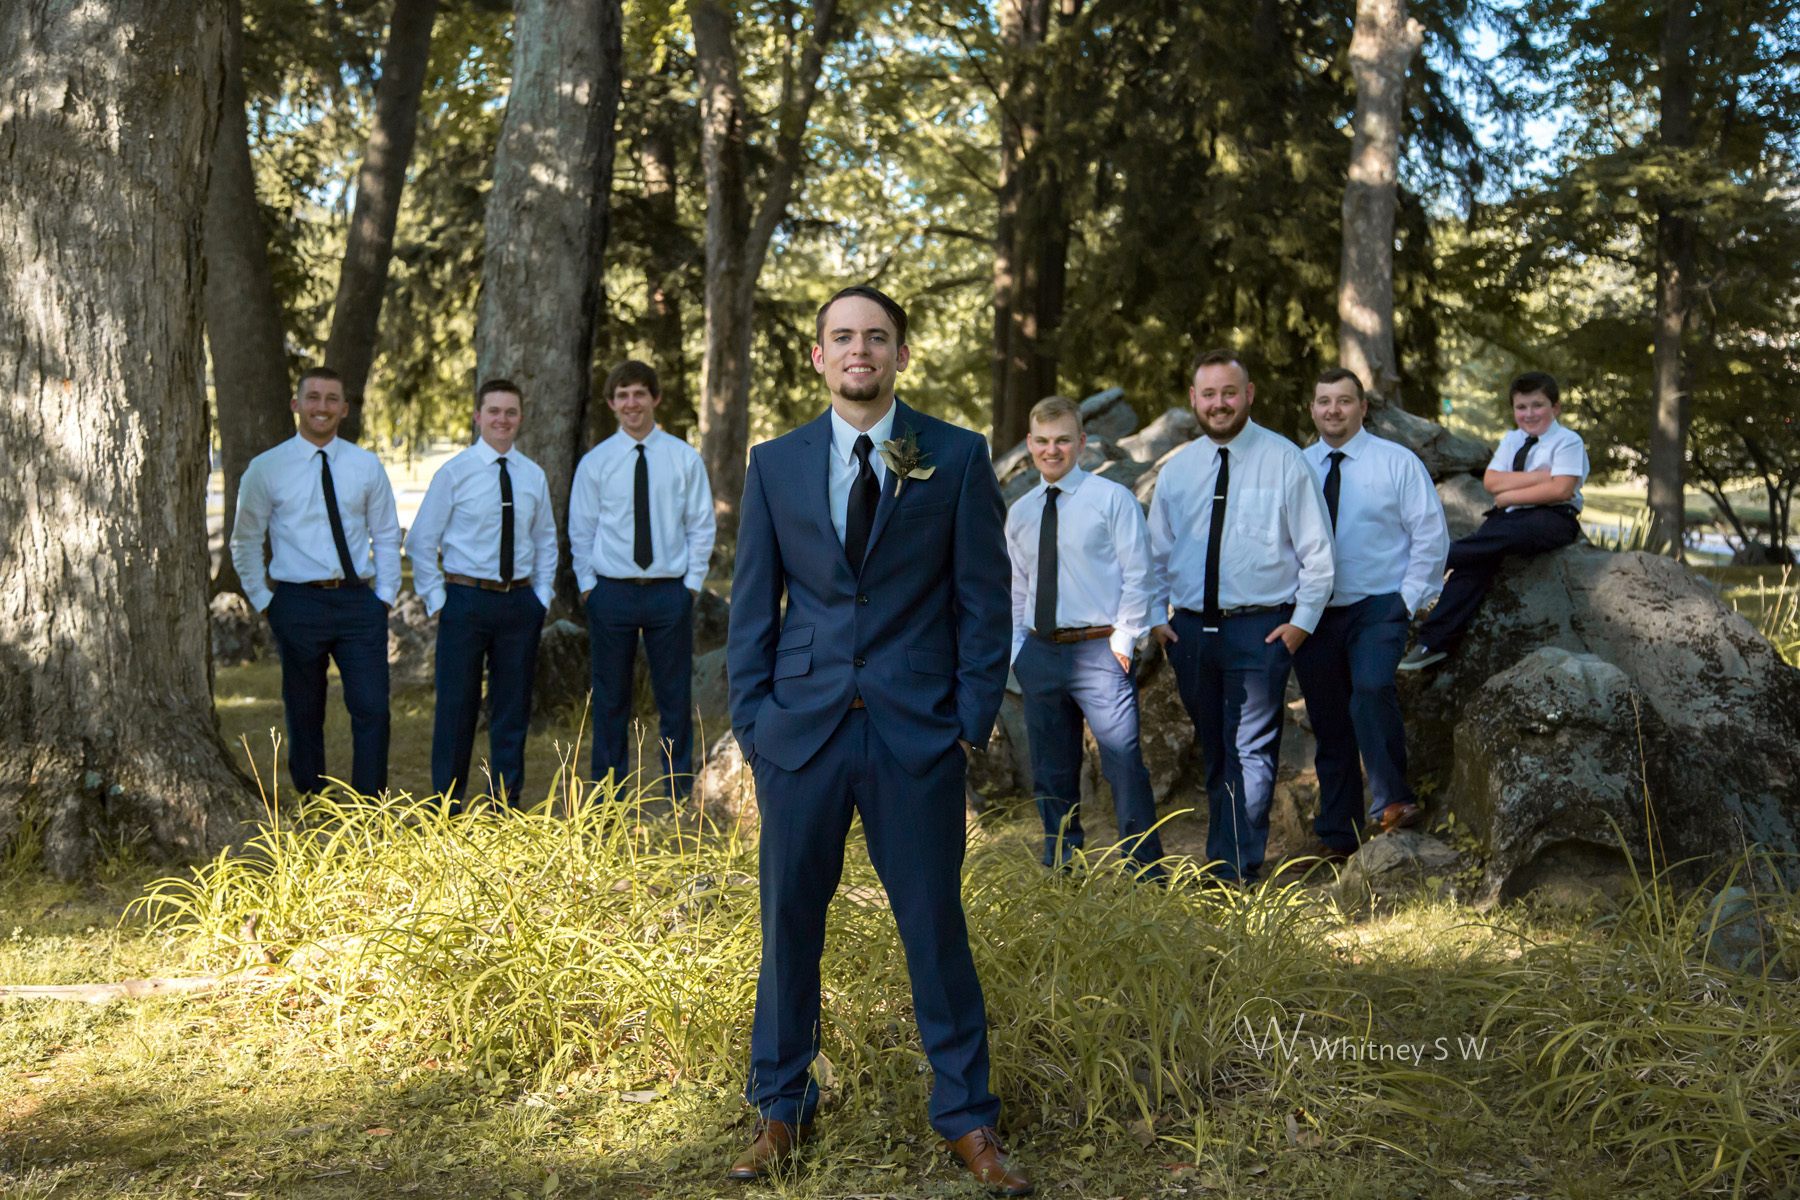 SimpsonFalinWedding_Photography by Whitney S Williams (231).jpg